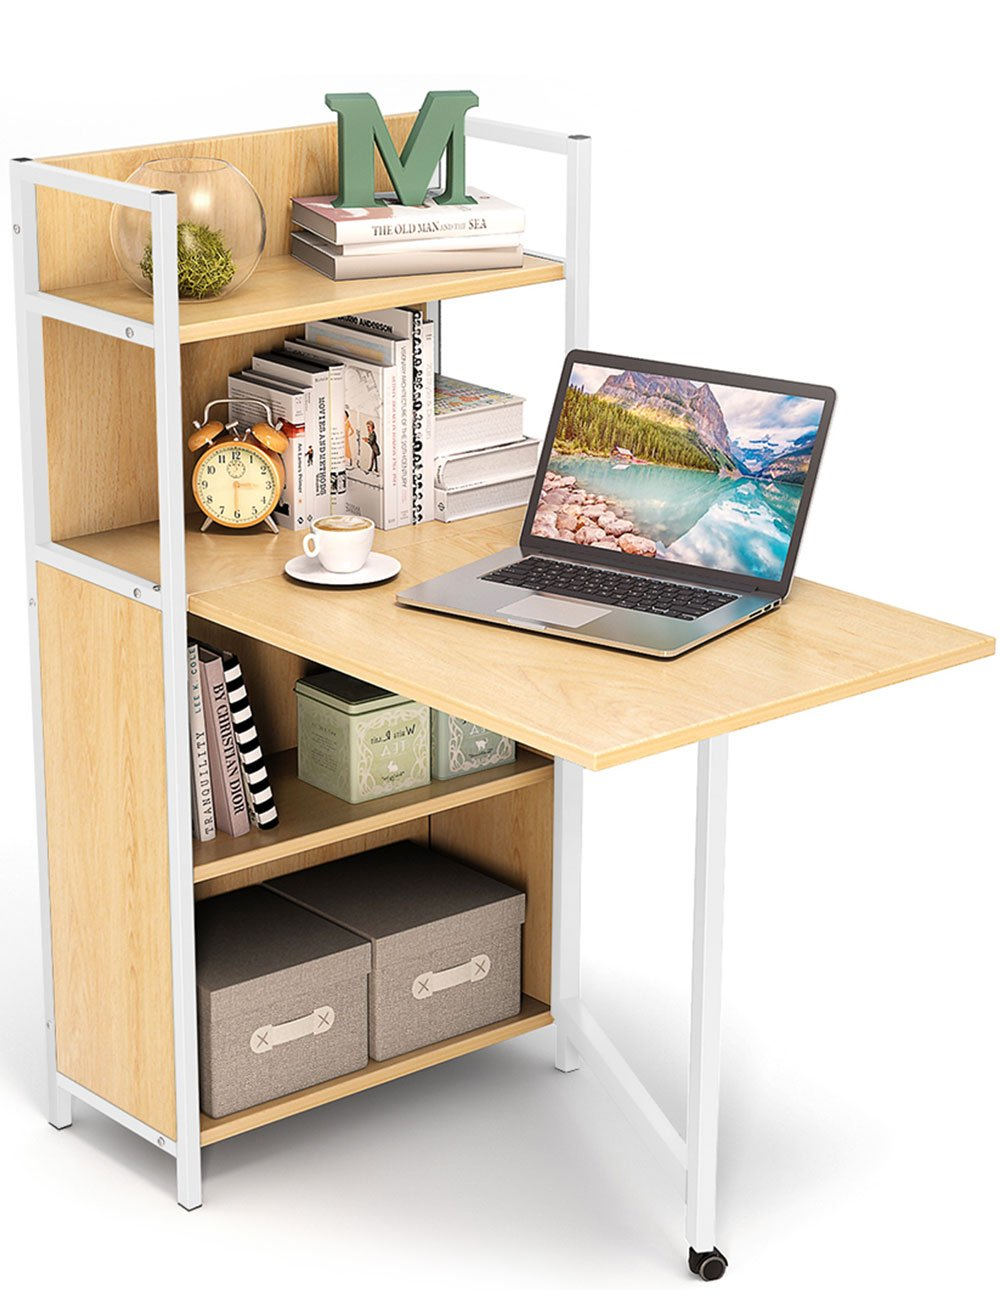 Tribesigns Small Folding Computer Desk With Storage Shelves, Foldable Pc  Laptop Study Table Writing Desk With Hutch For Small Space (walnut)